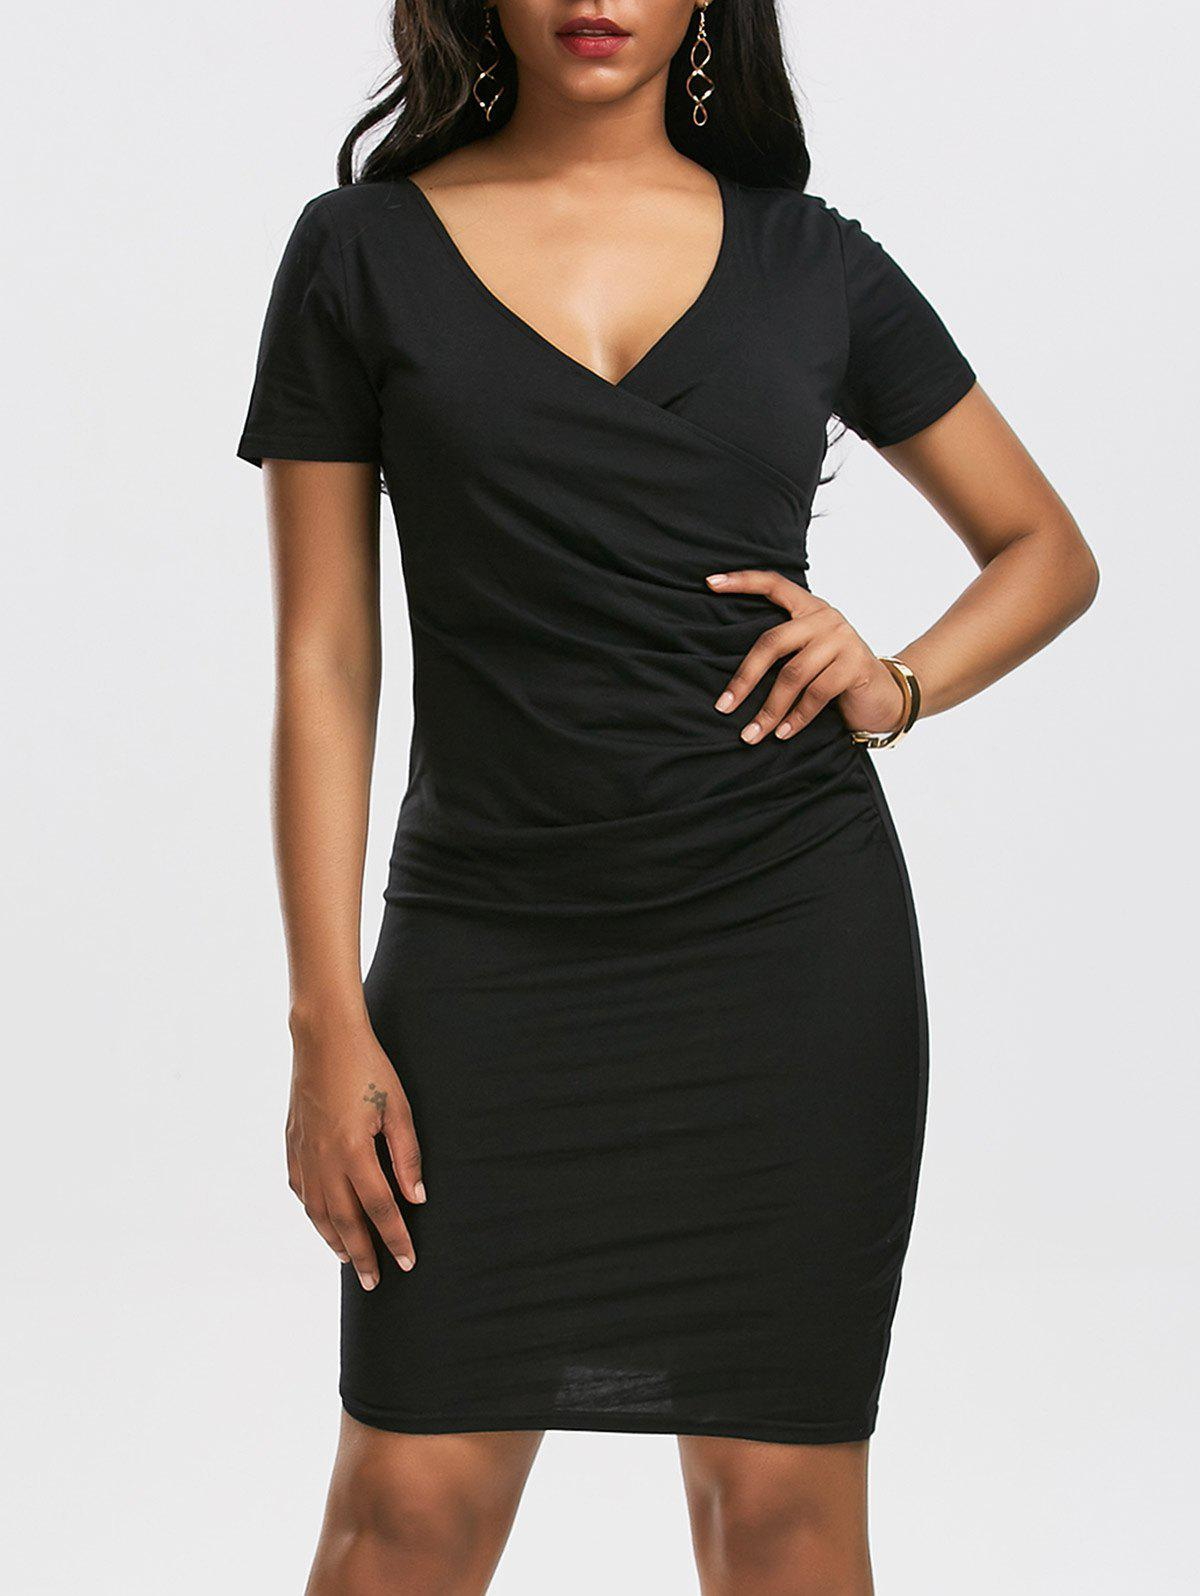 V Neck Surplice Ruched Bodycon Dress - BLACK XL